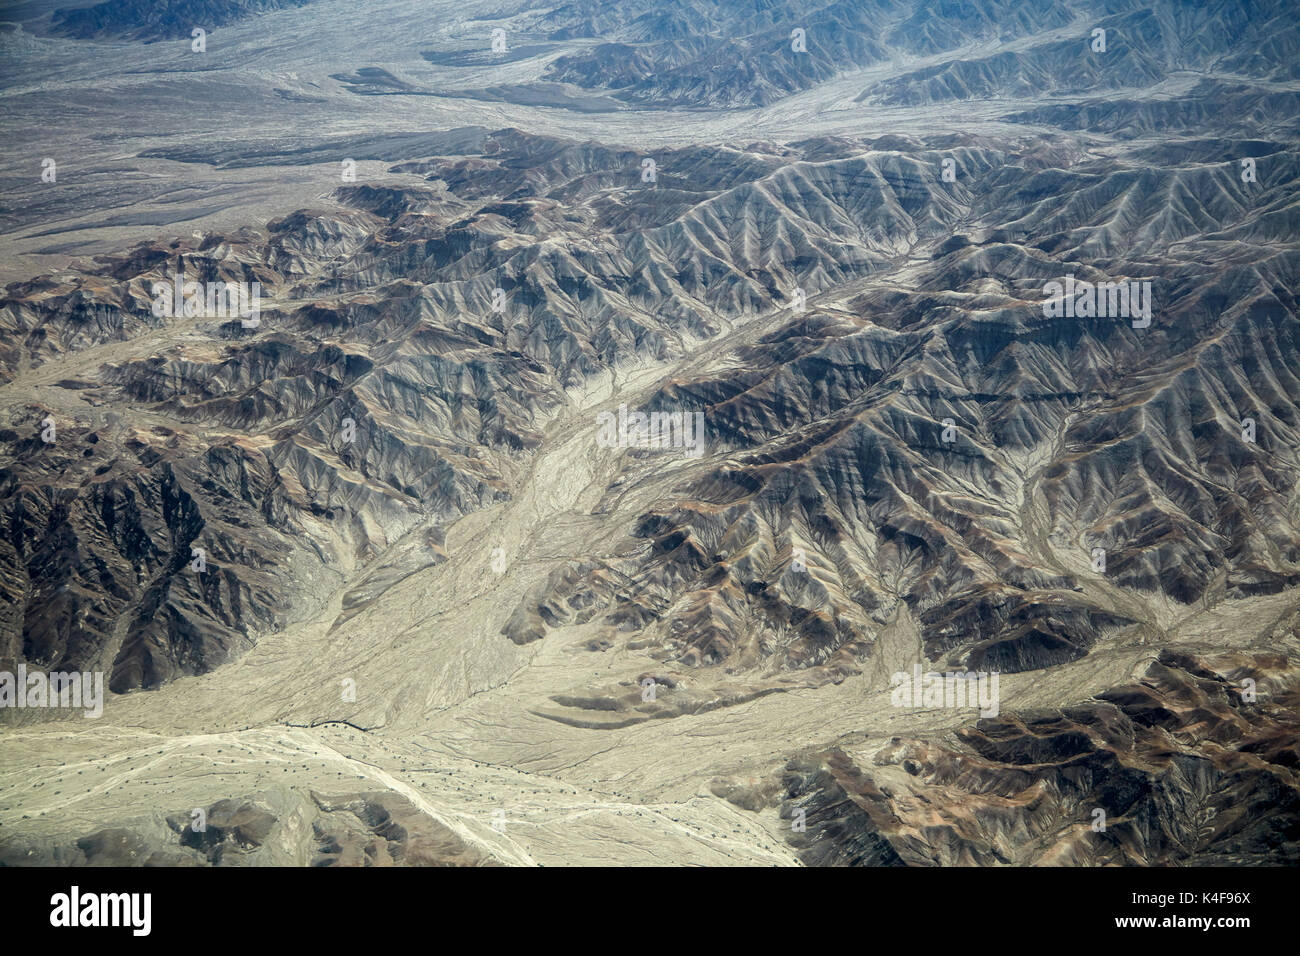 Eroded hills and dry river beds in the desert south of Ica, Peru, South America - aerial - Stock Image